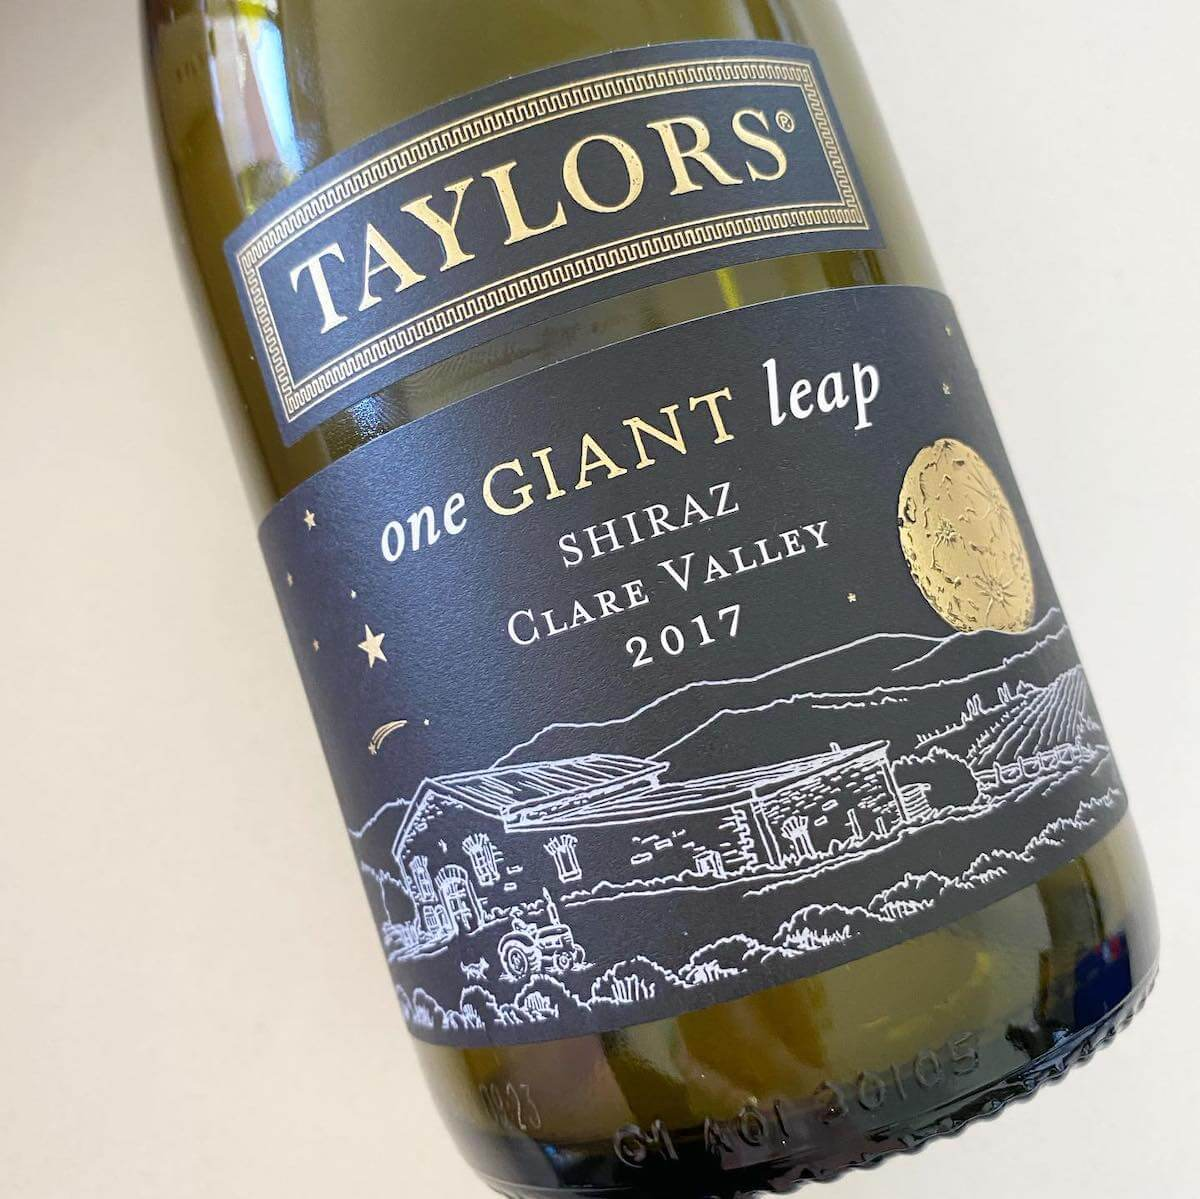 Taylors One Giant Leap 2017 Shiraz - Clare Valley